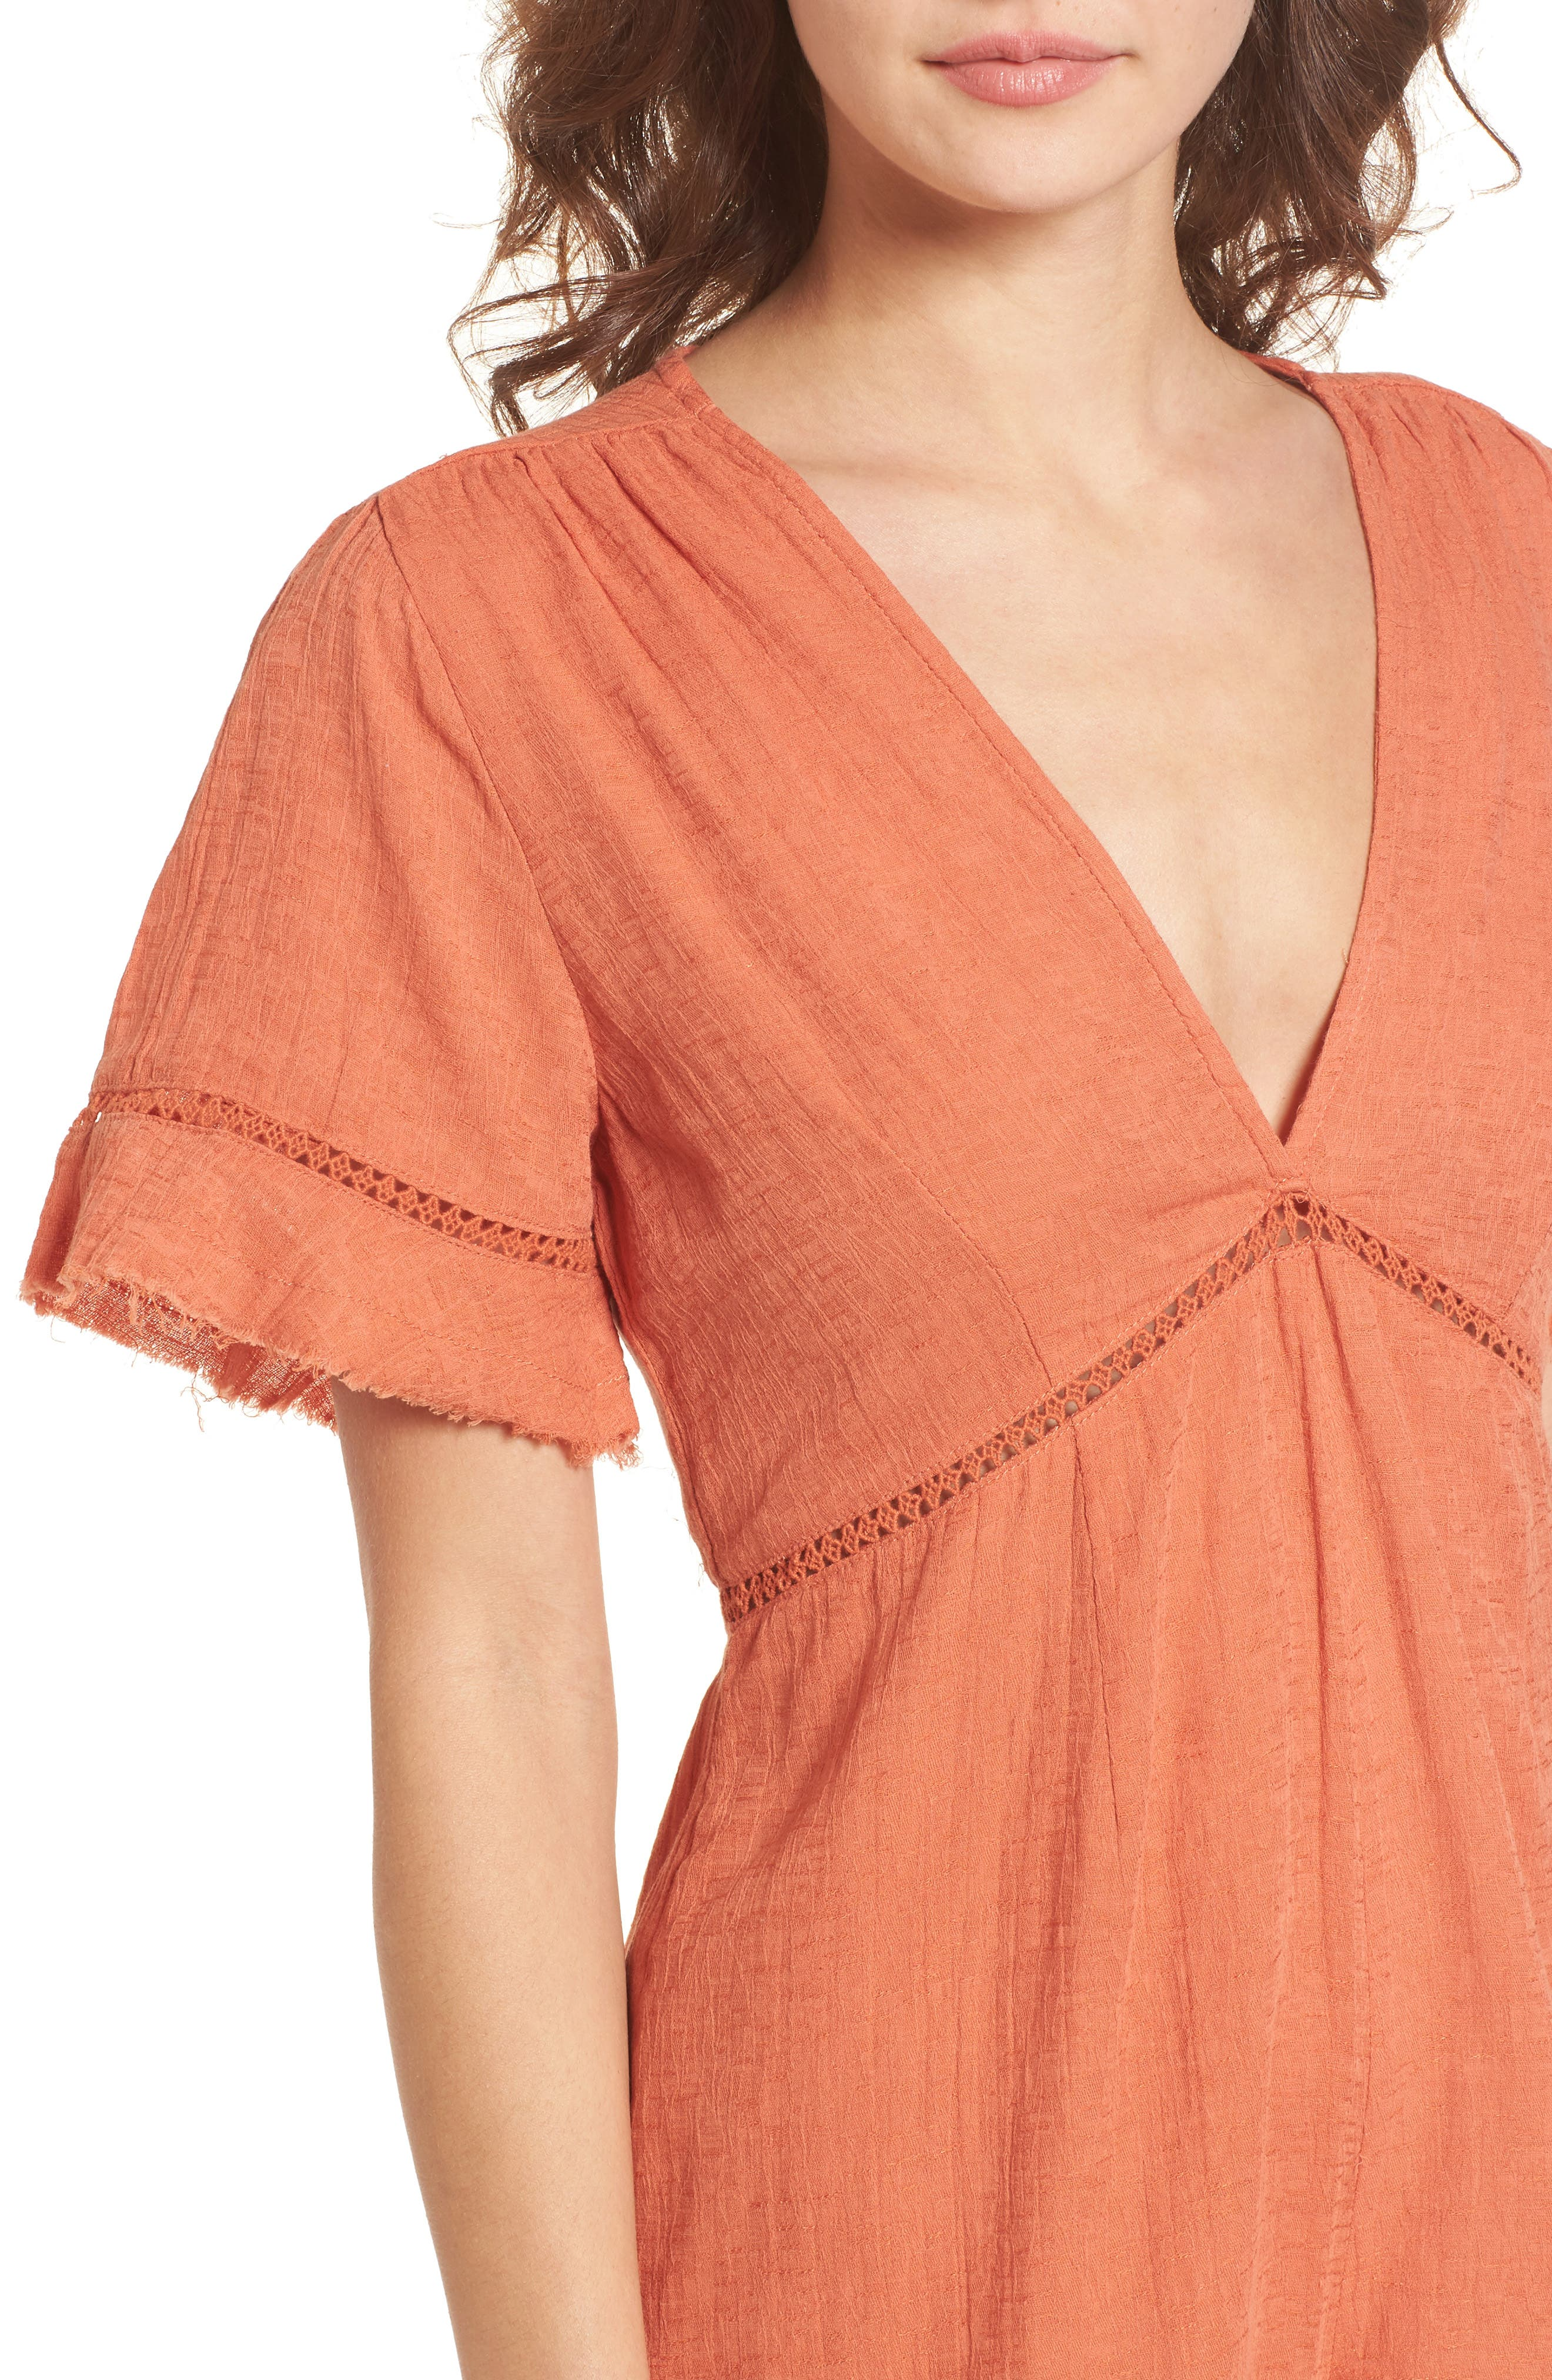 Highway to Highway Fray Edge Romper,                             Alternate thumbnail 4, color,                             950